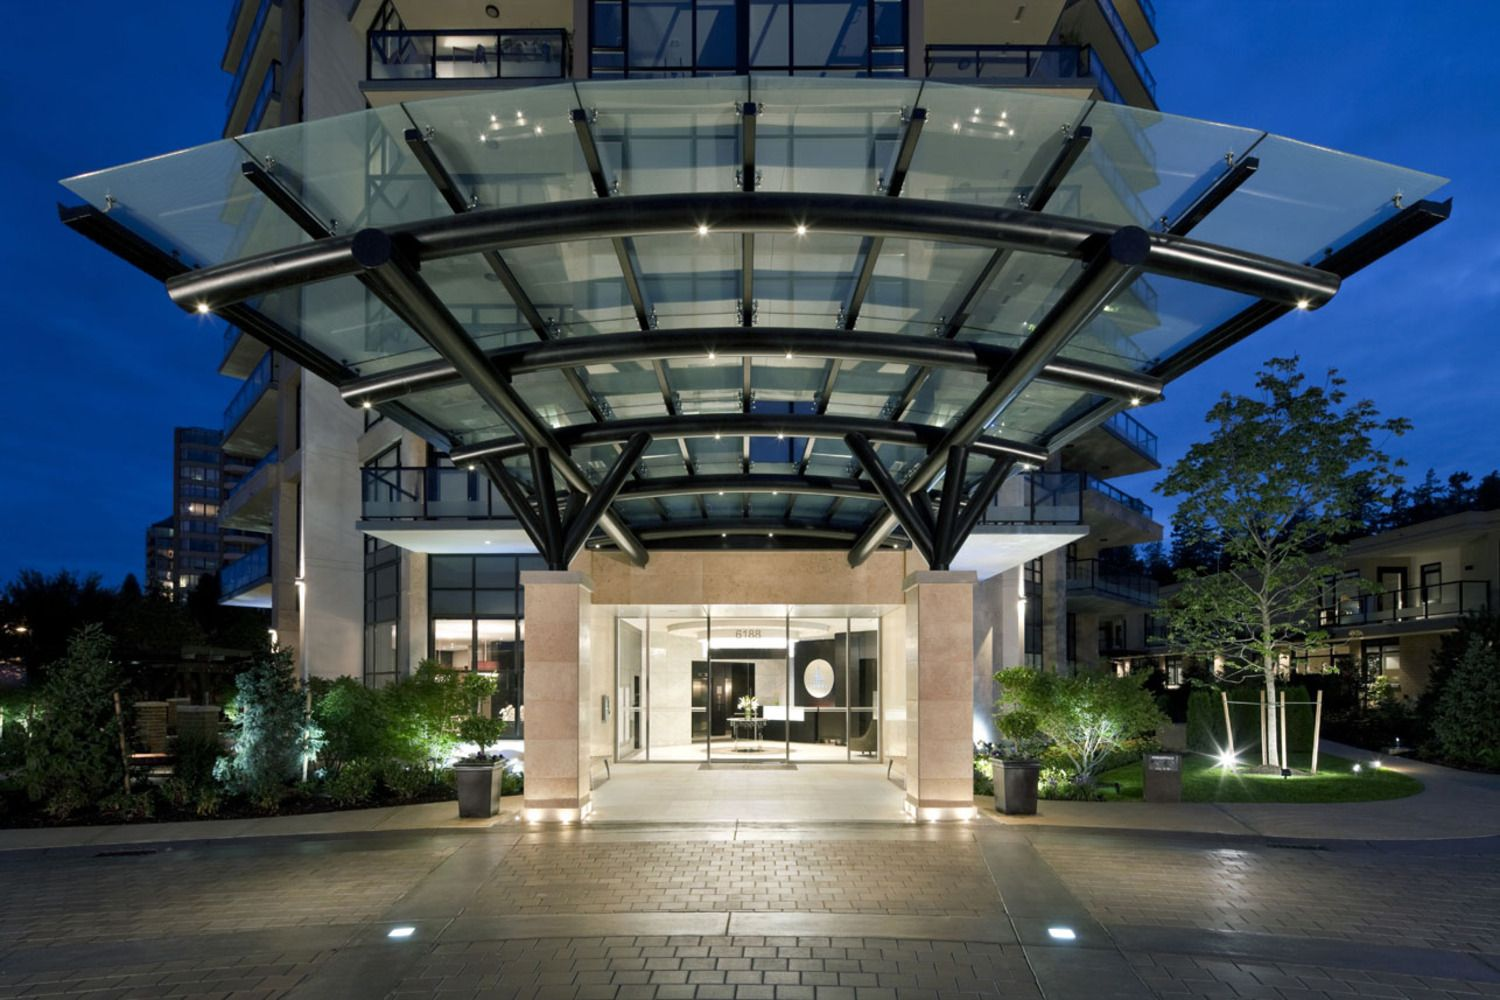 Hotel Entrance Canopies